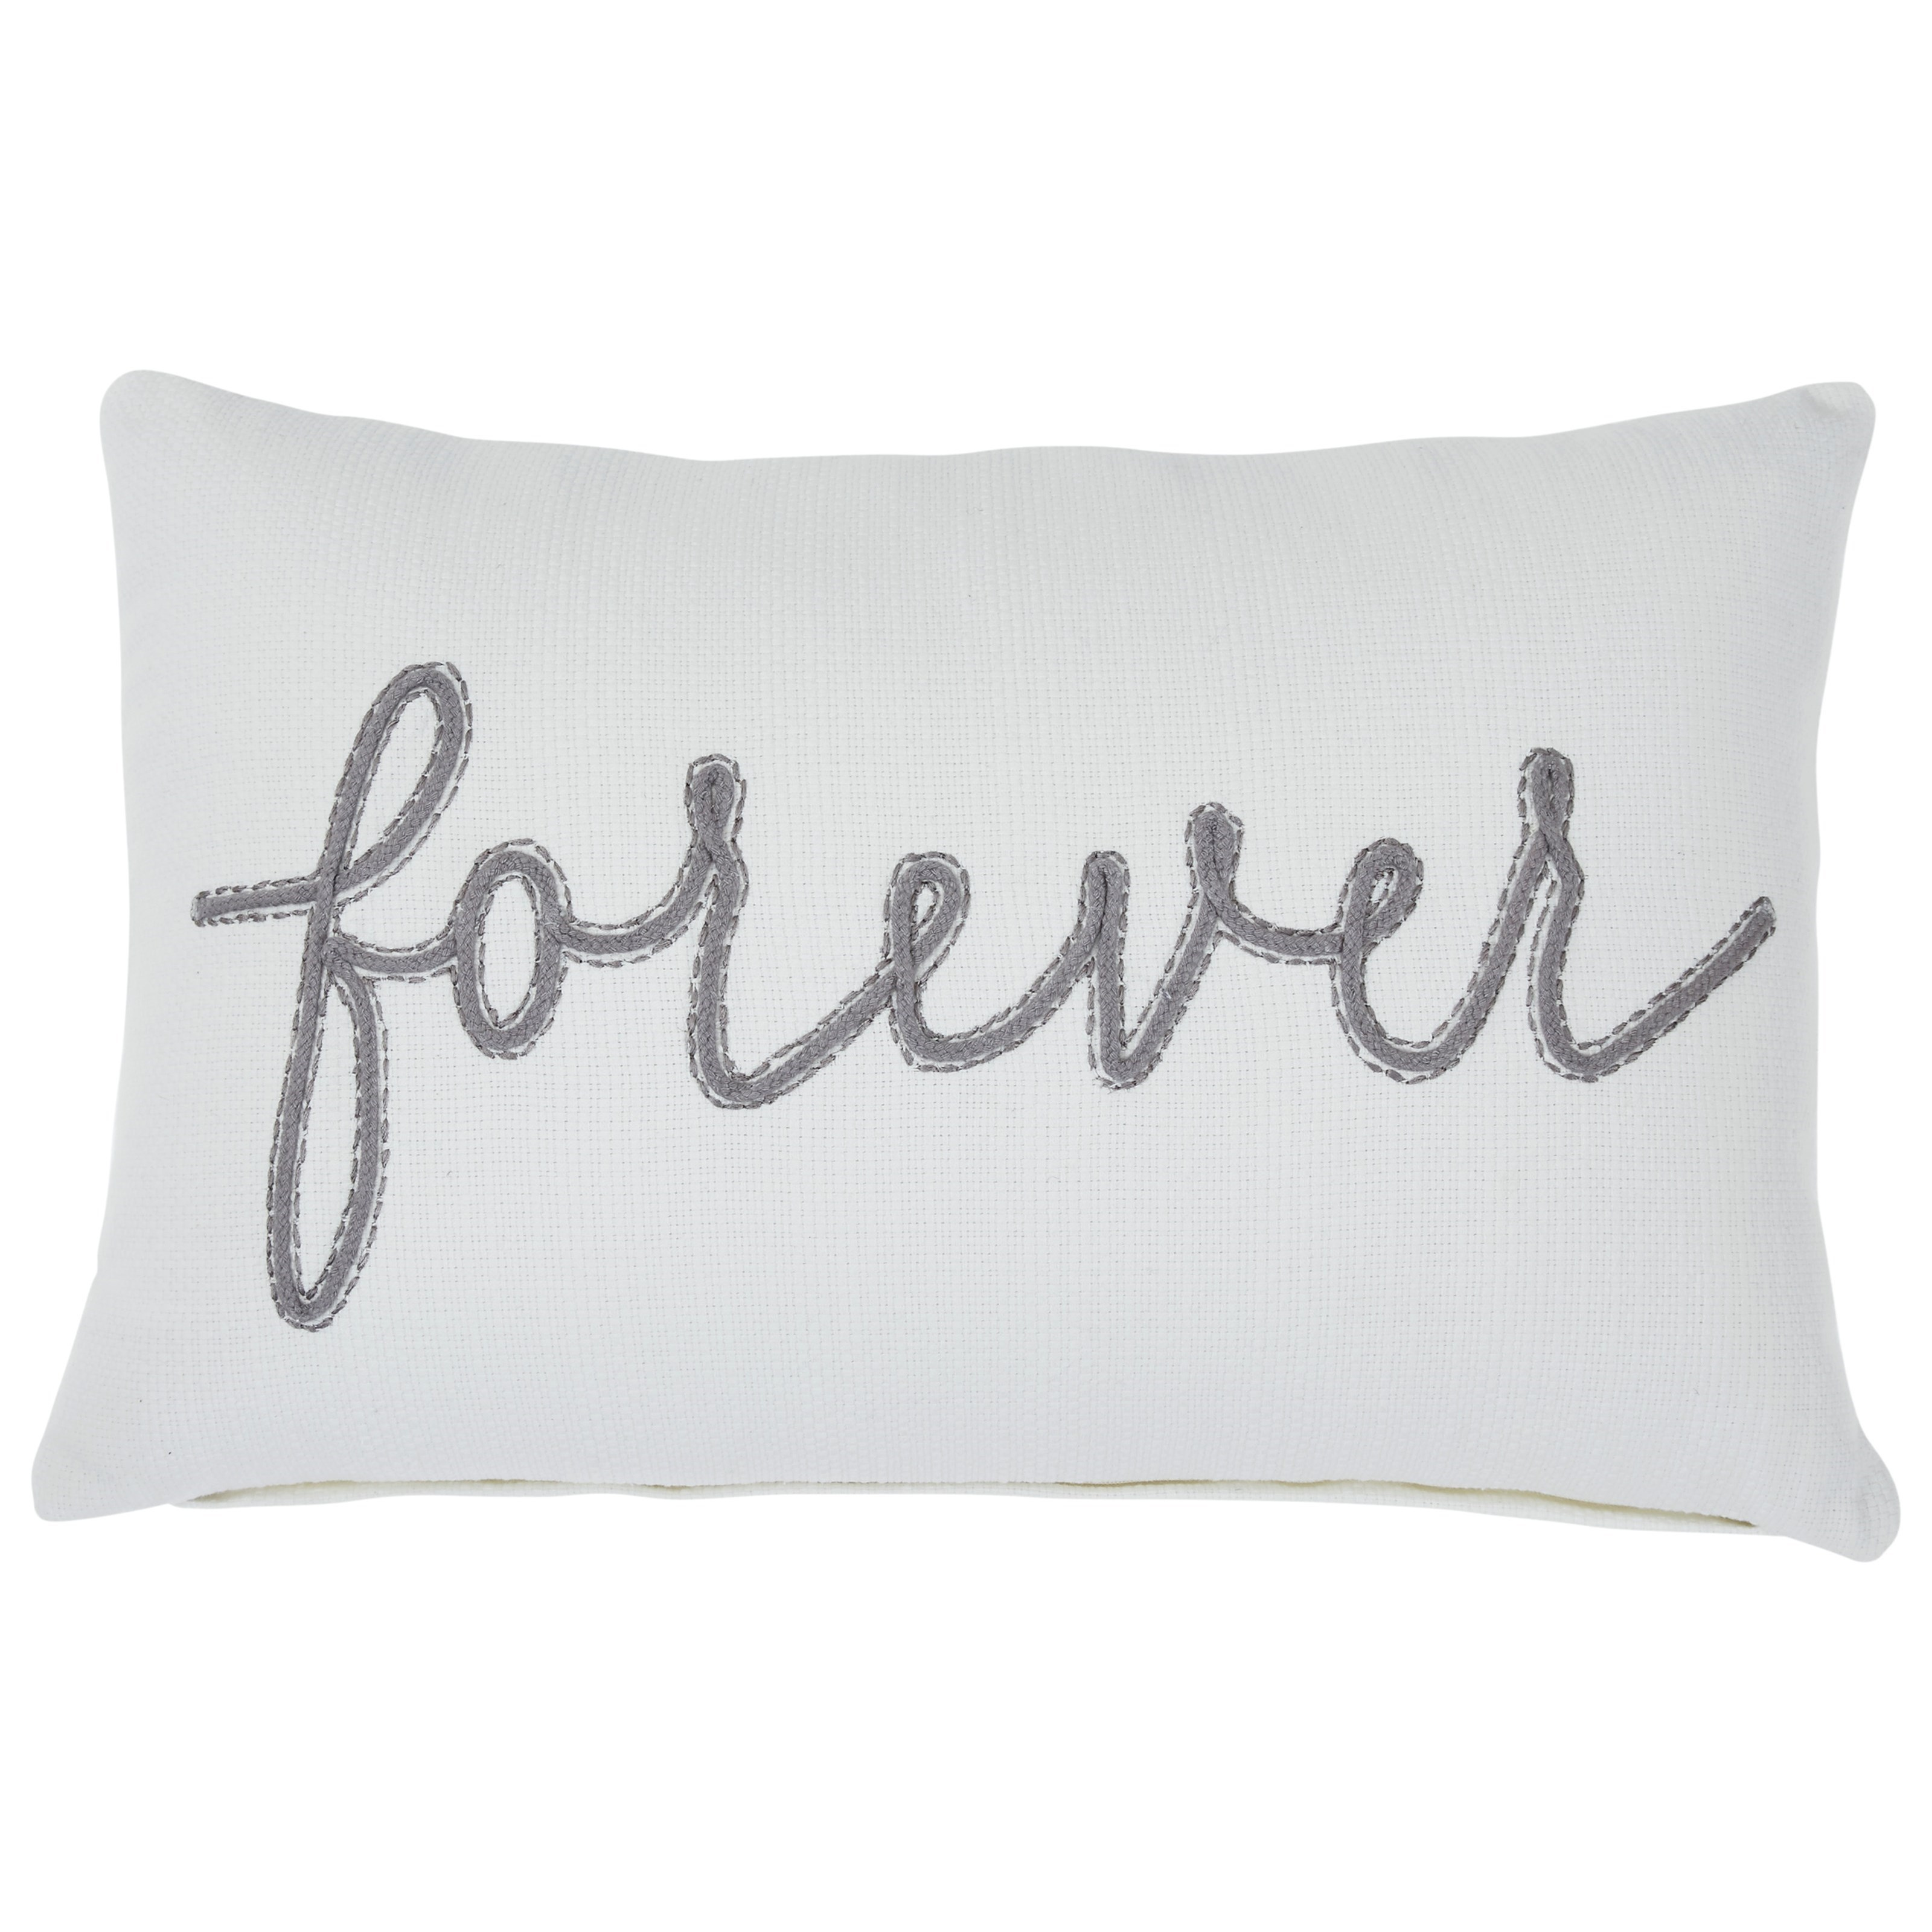 Pillows Forever White/Gray Pillow by Signature Design by Ashley at Northeast Factory Direct